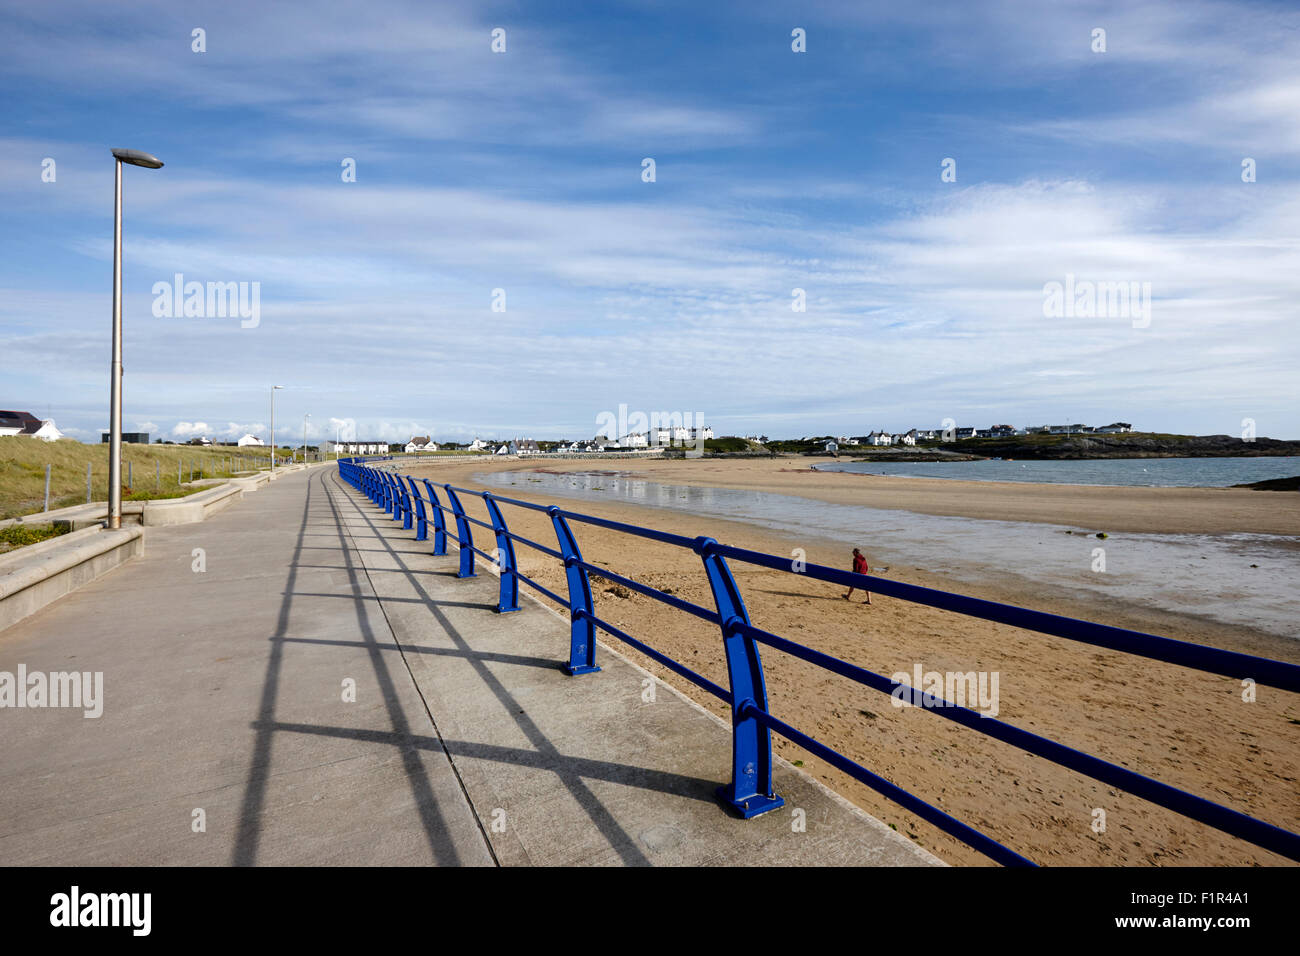 seafront and beach at trearddur bay village north wales uk - Stock Image